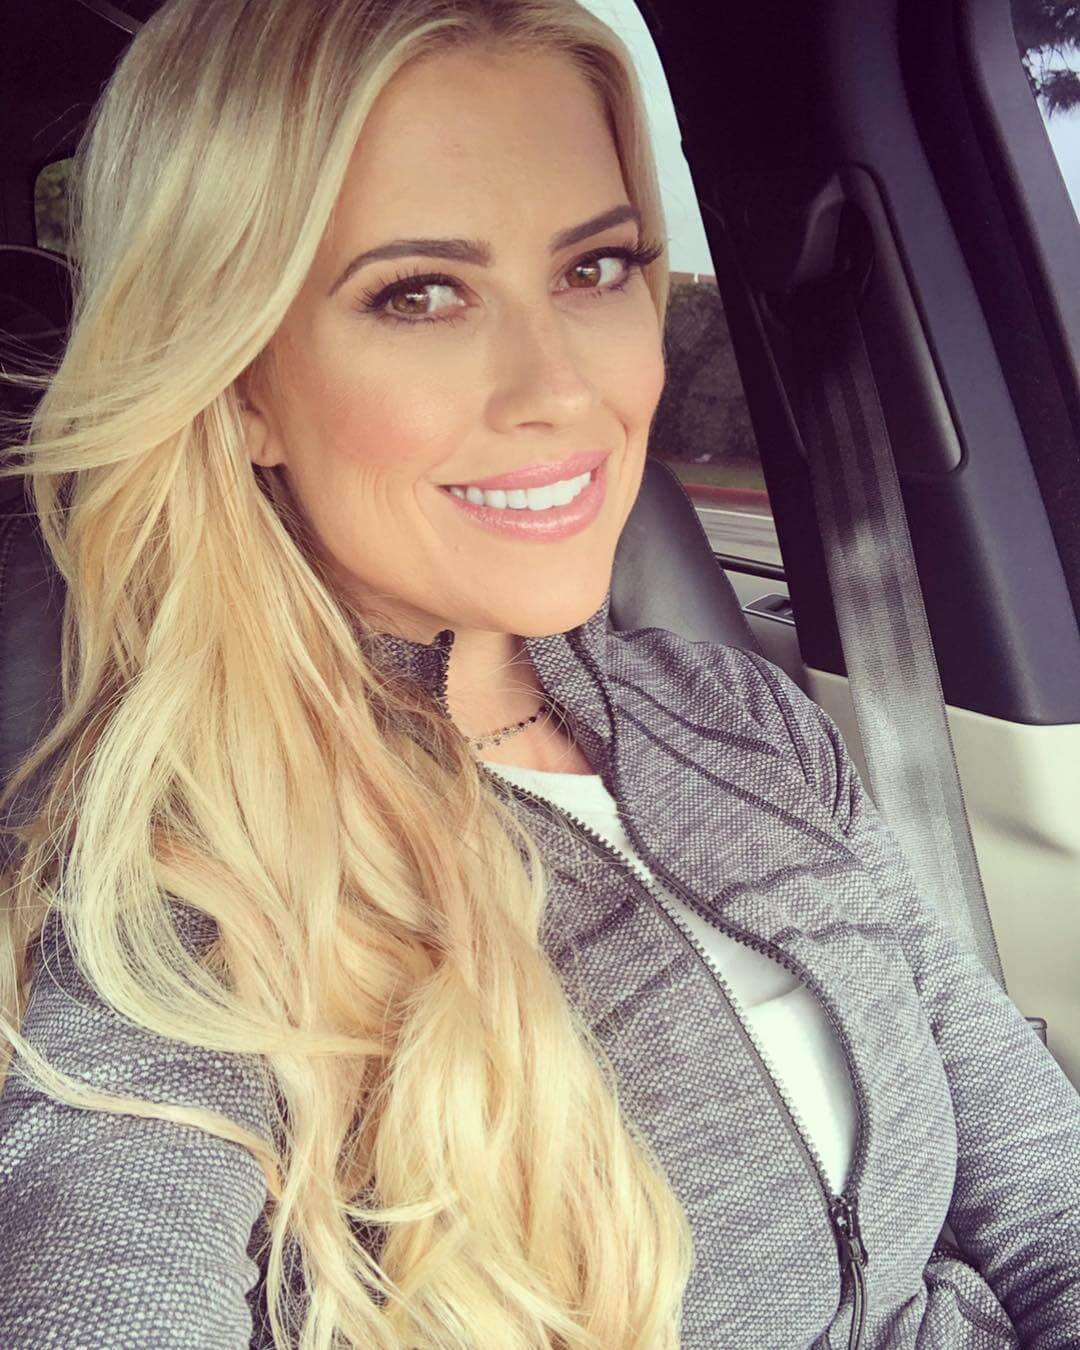 Christina Anstead hairs pic